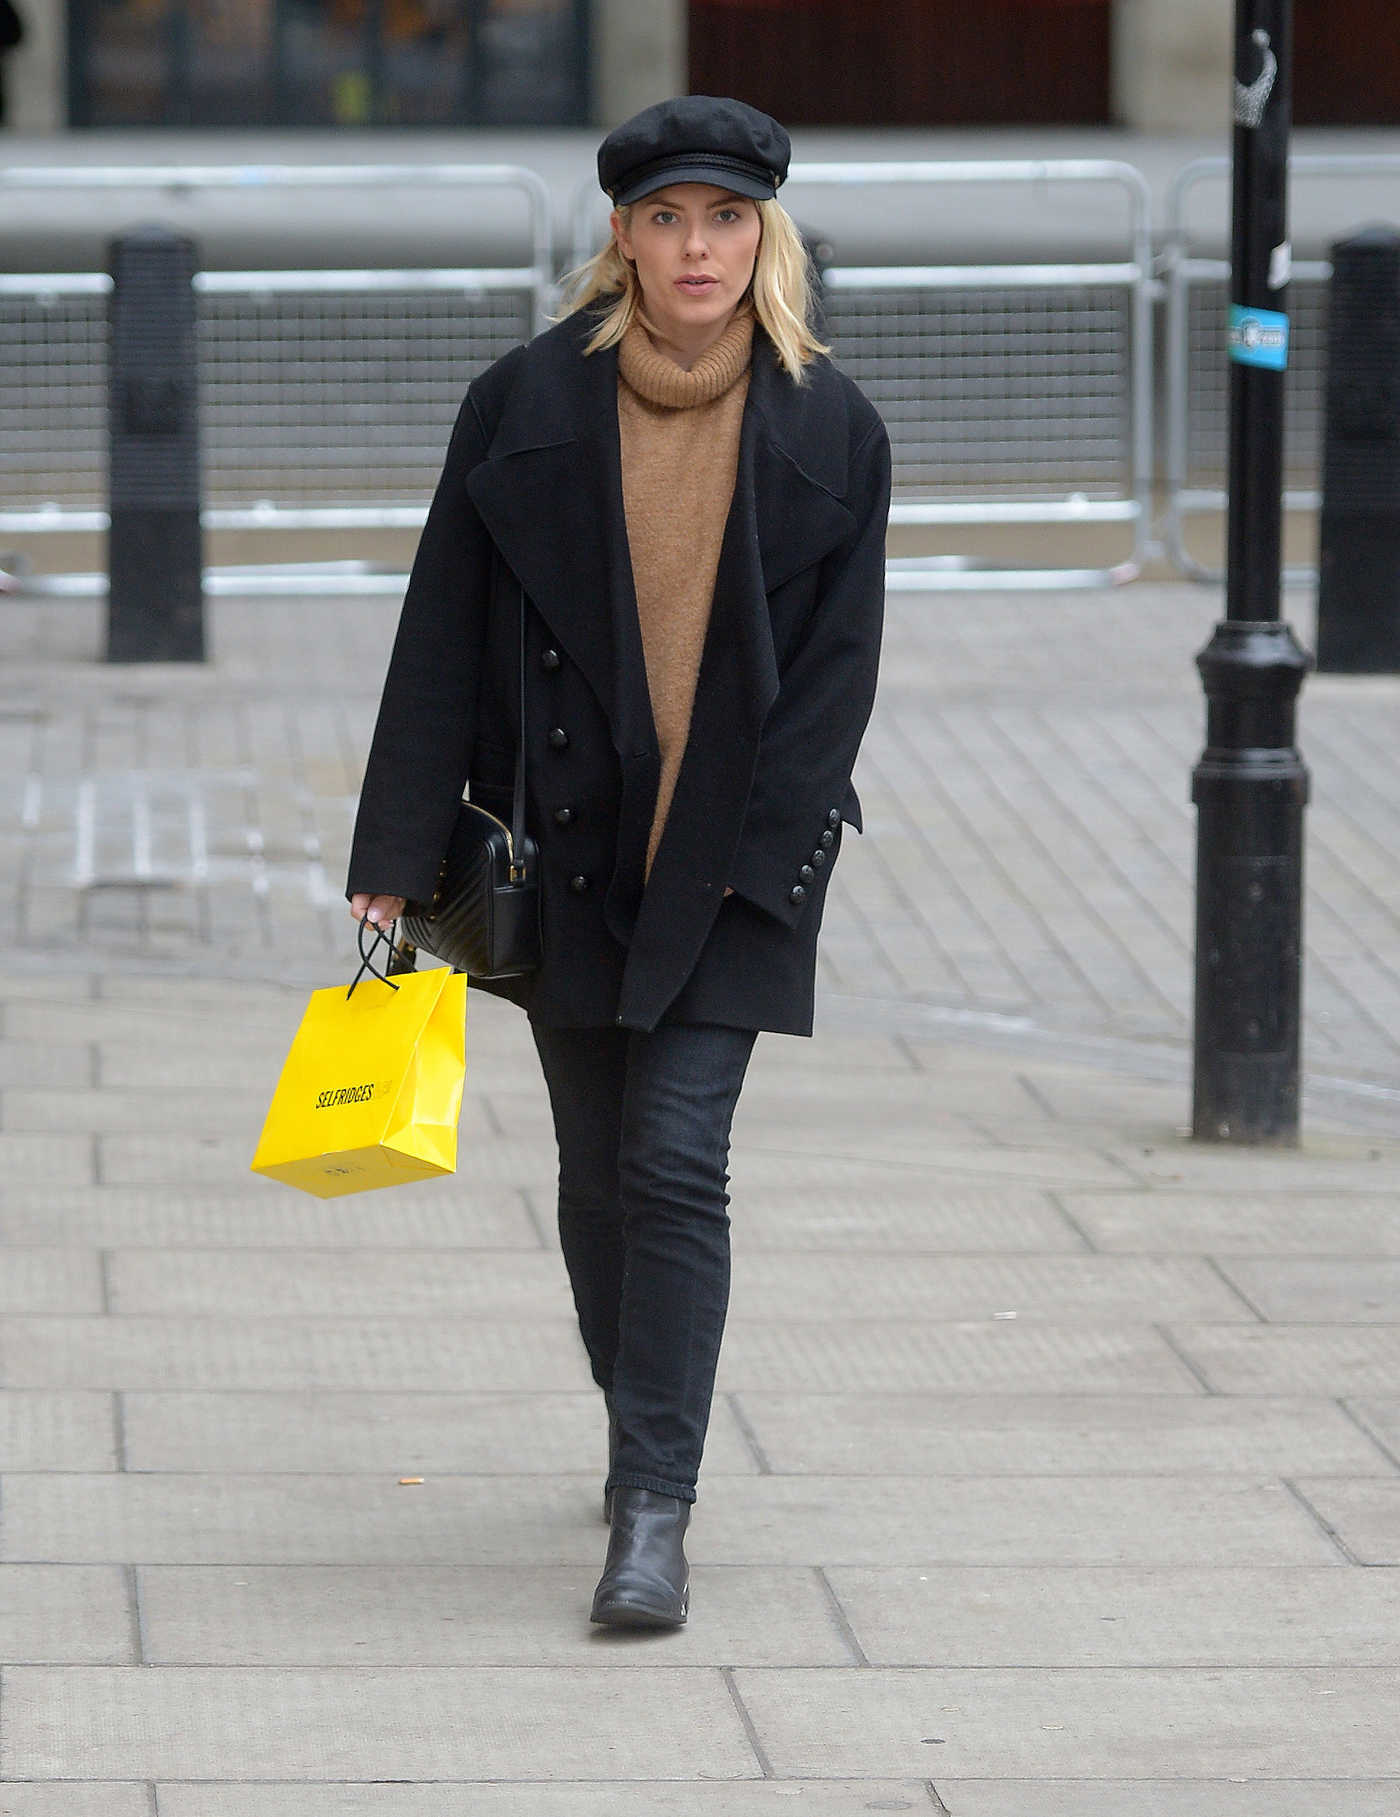 Mollie King in a Black Cap Arrives at the BBC Radio 1 Studios in London 01/12/2019